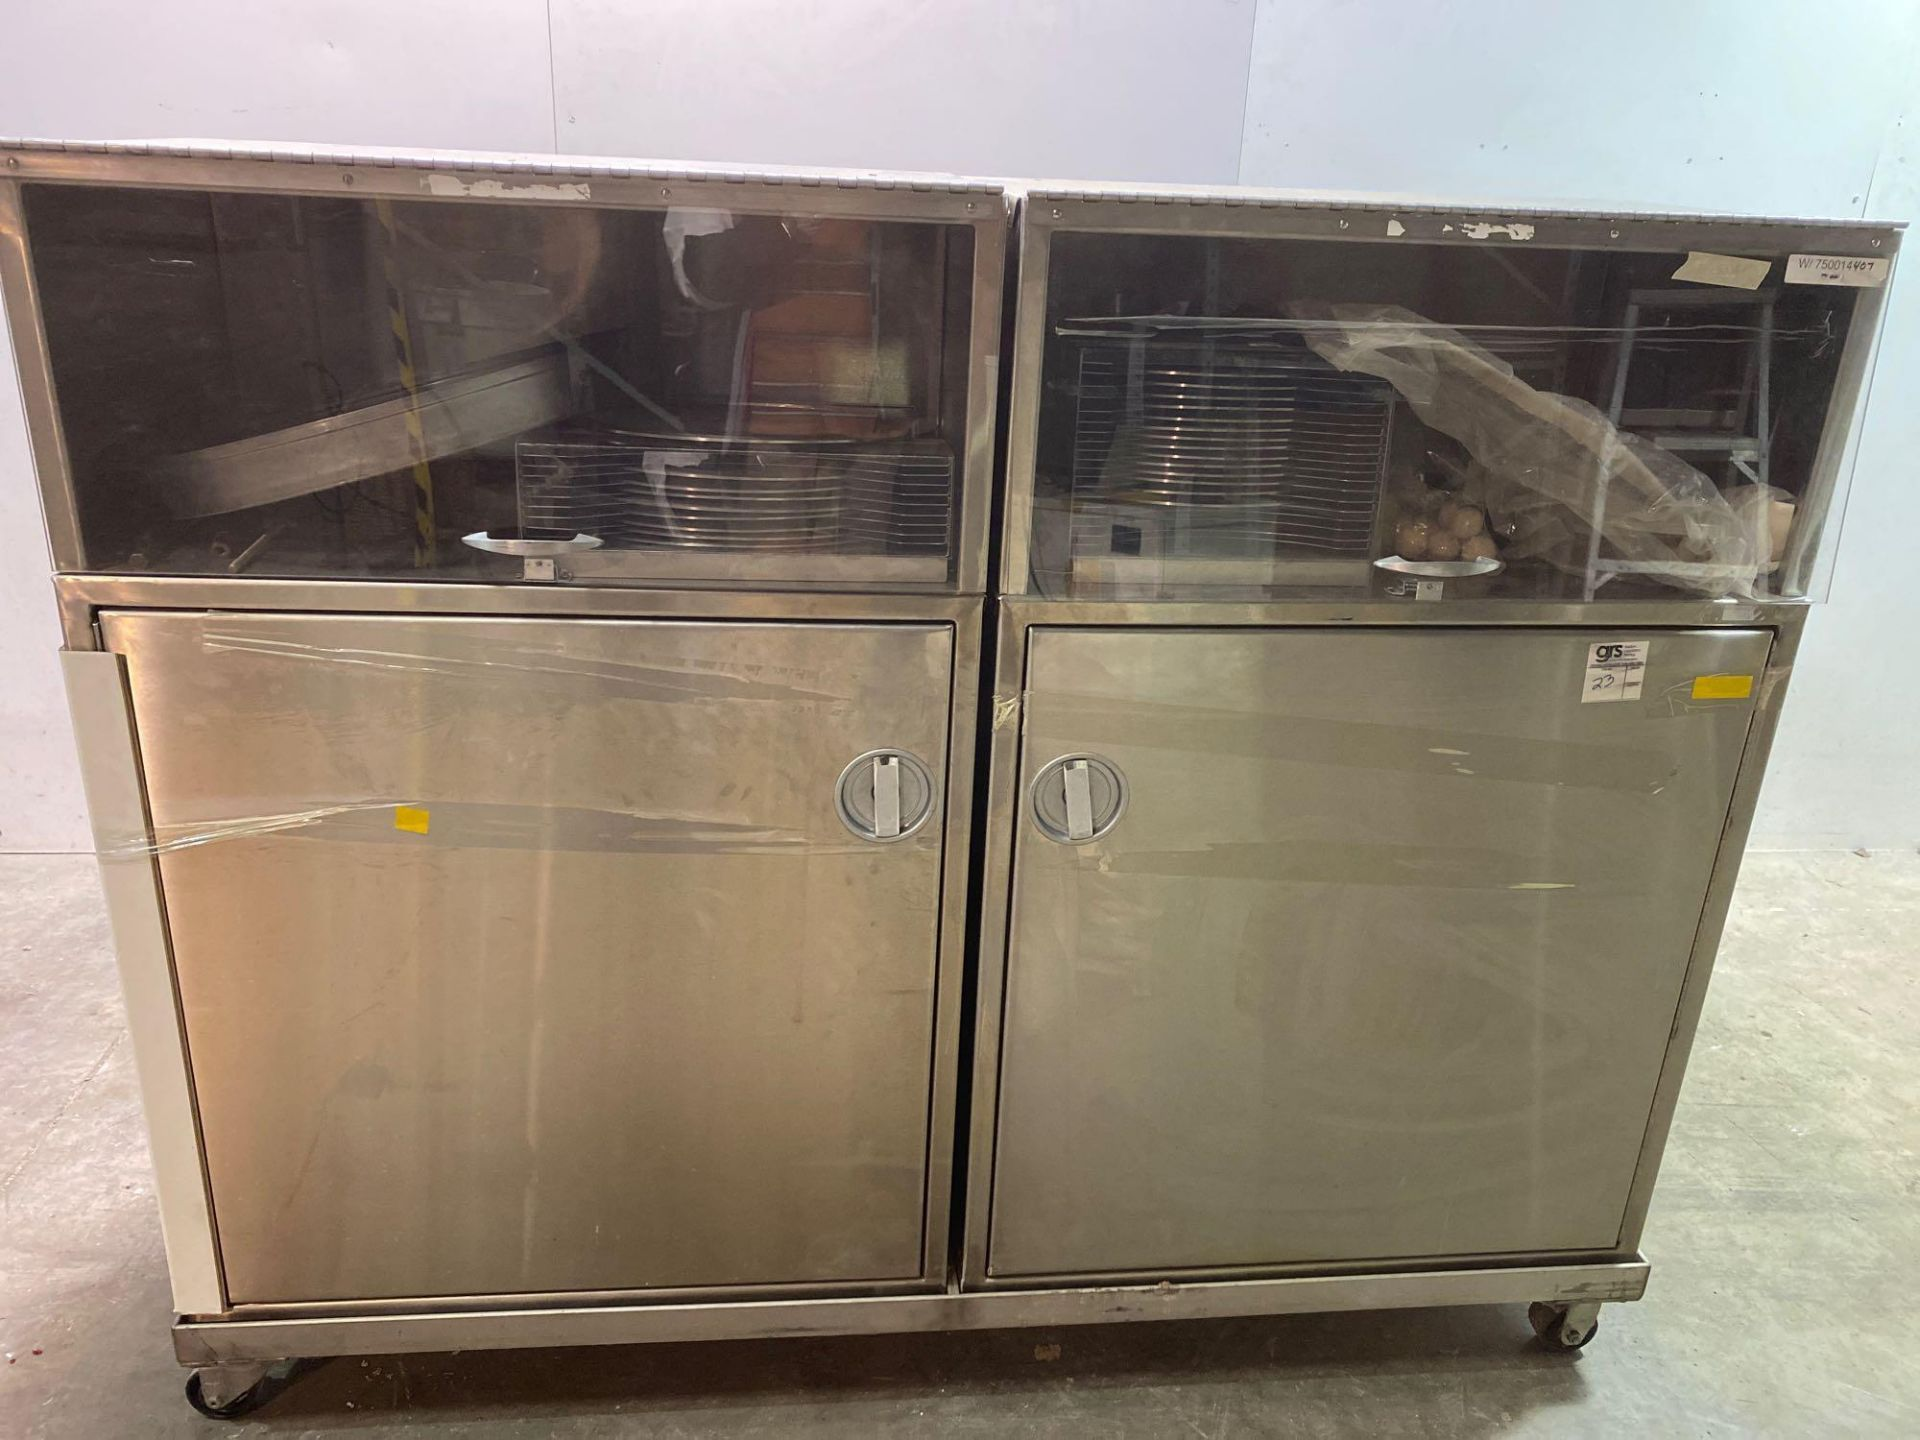 Mobile Stainless Steel Cabinet with Sifter Sieves - Assorted Sizes - Image 3 of 13